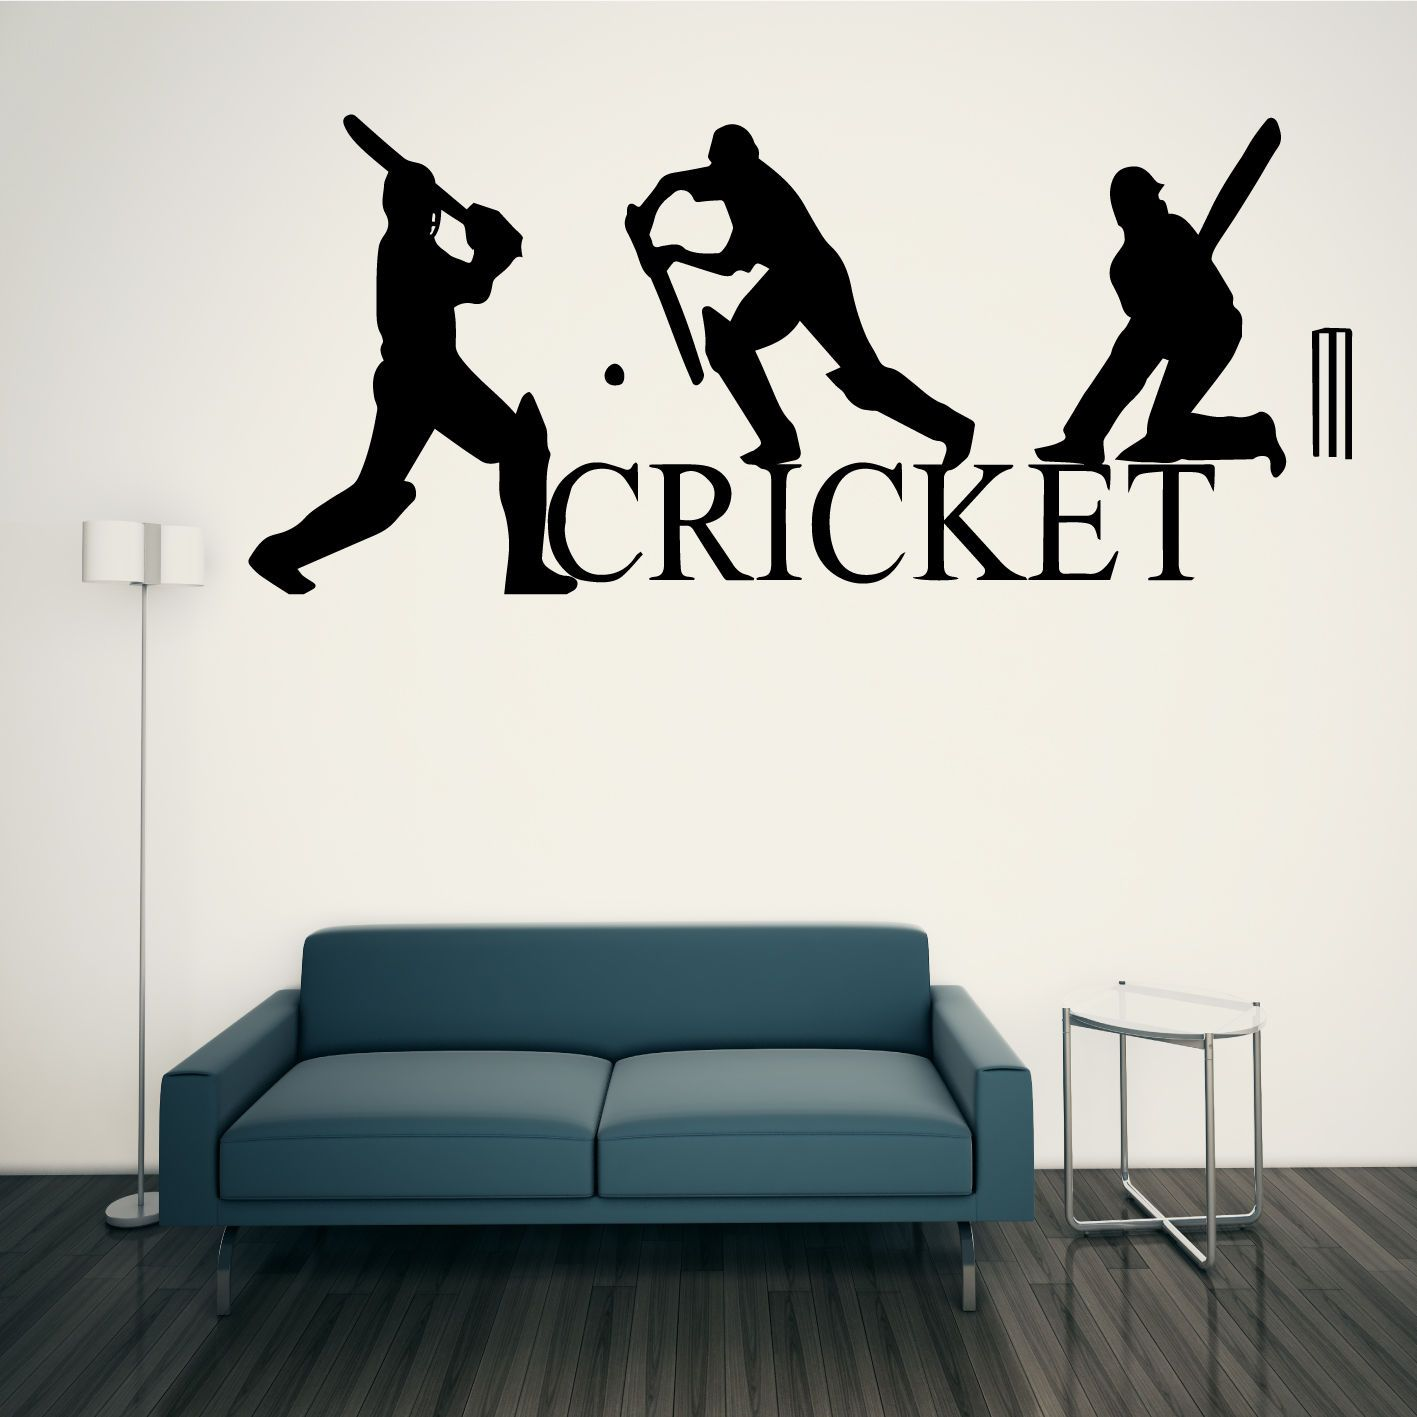 Cricket Wall Art Sticker Sport Cricketers Graphics Transfer Part 19